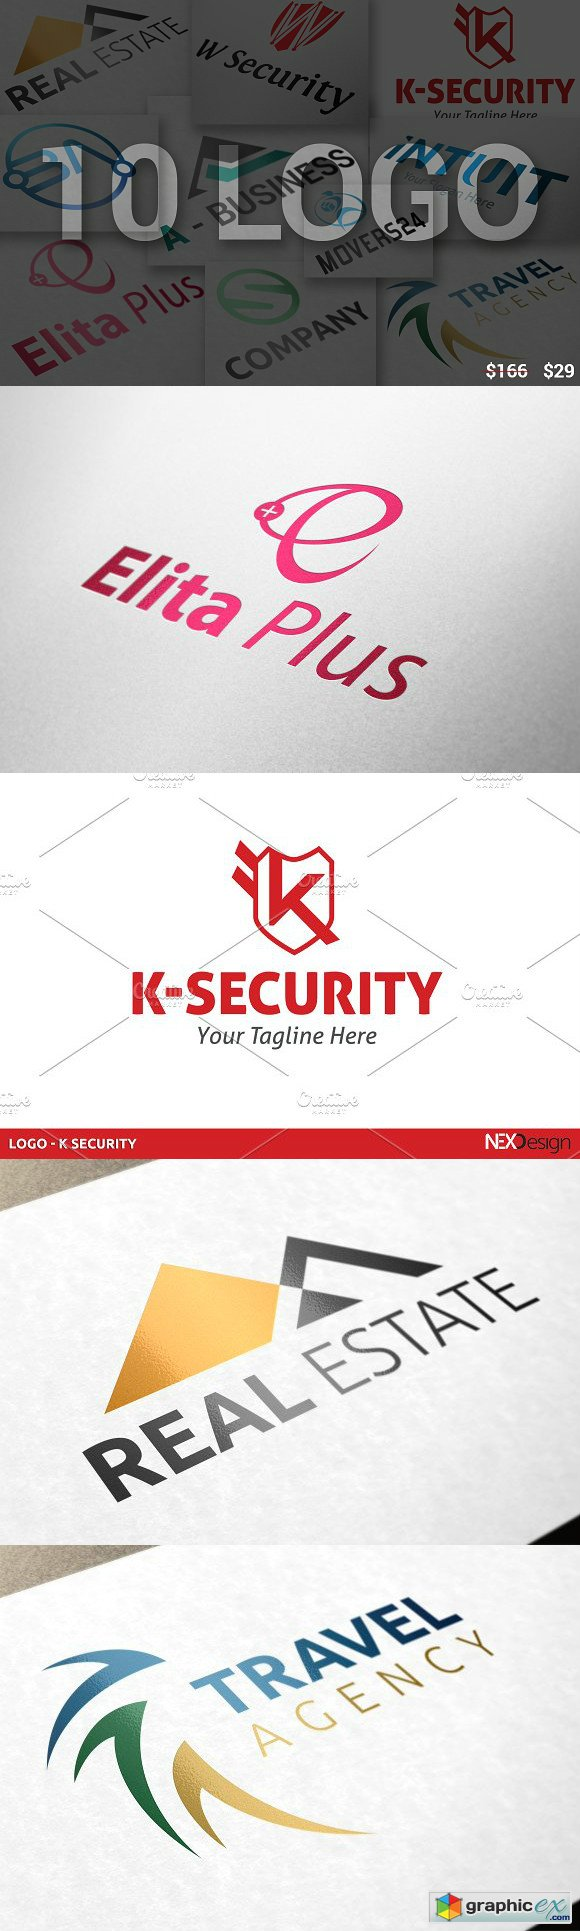 10 Business Logo Bundle - SK